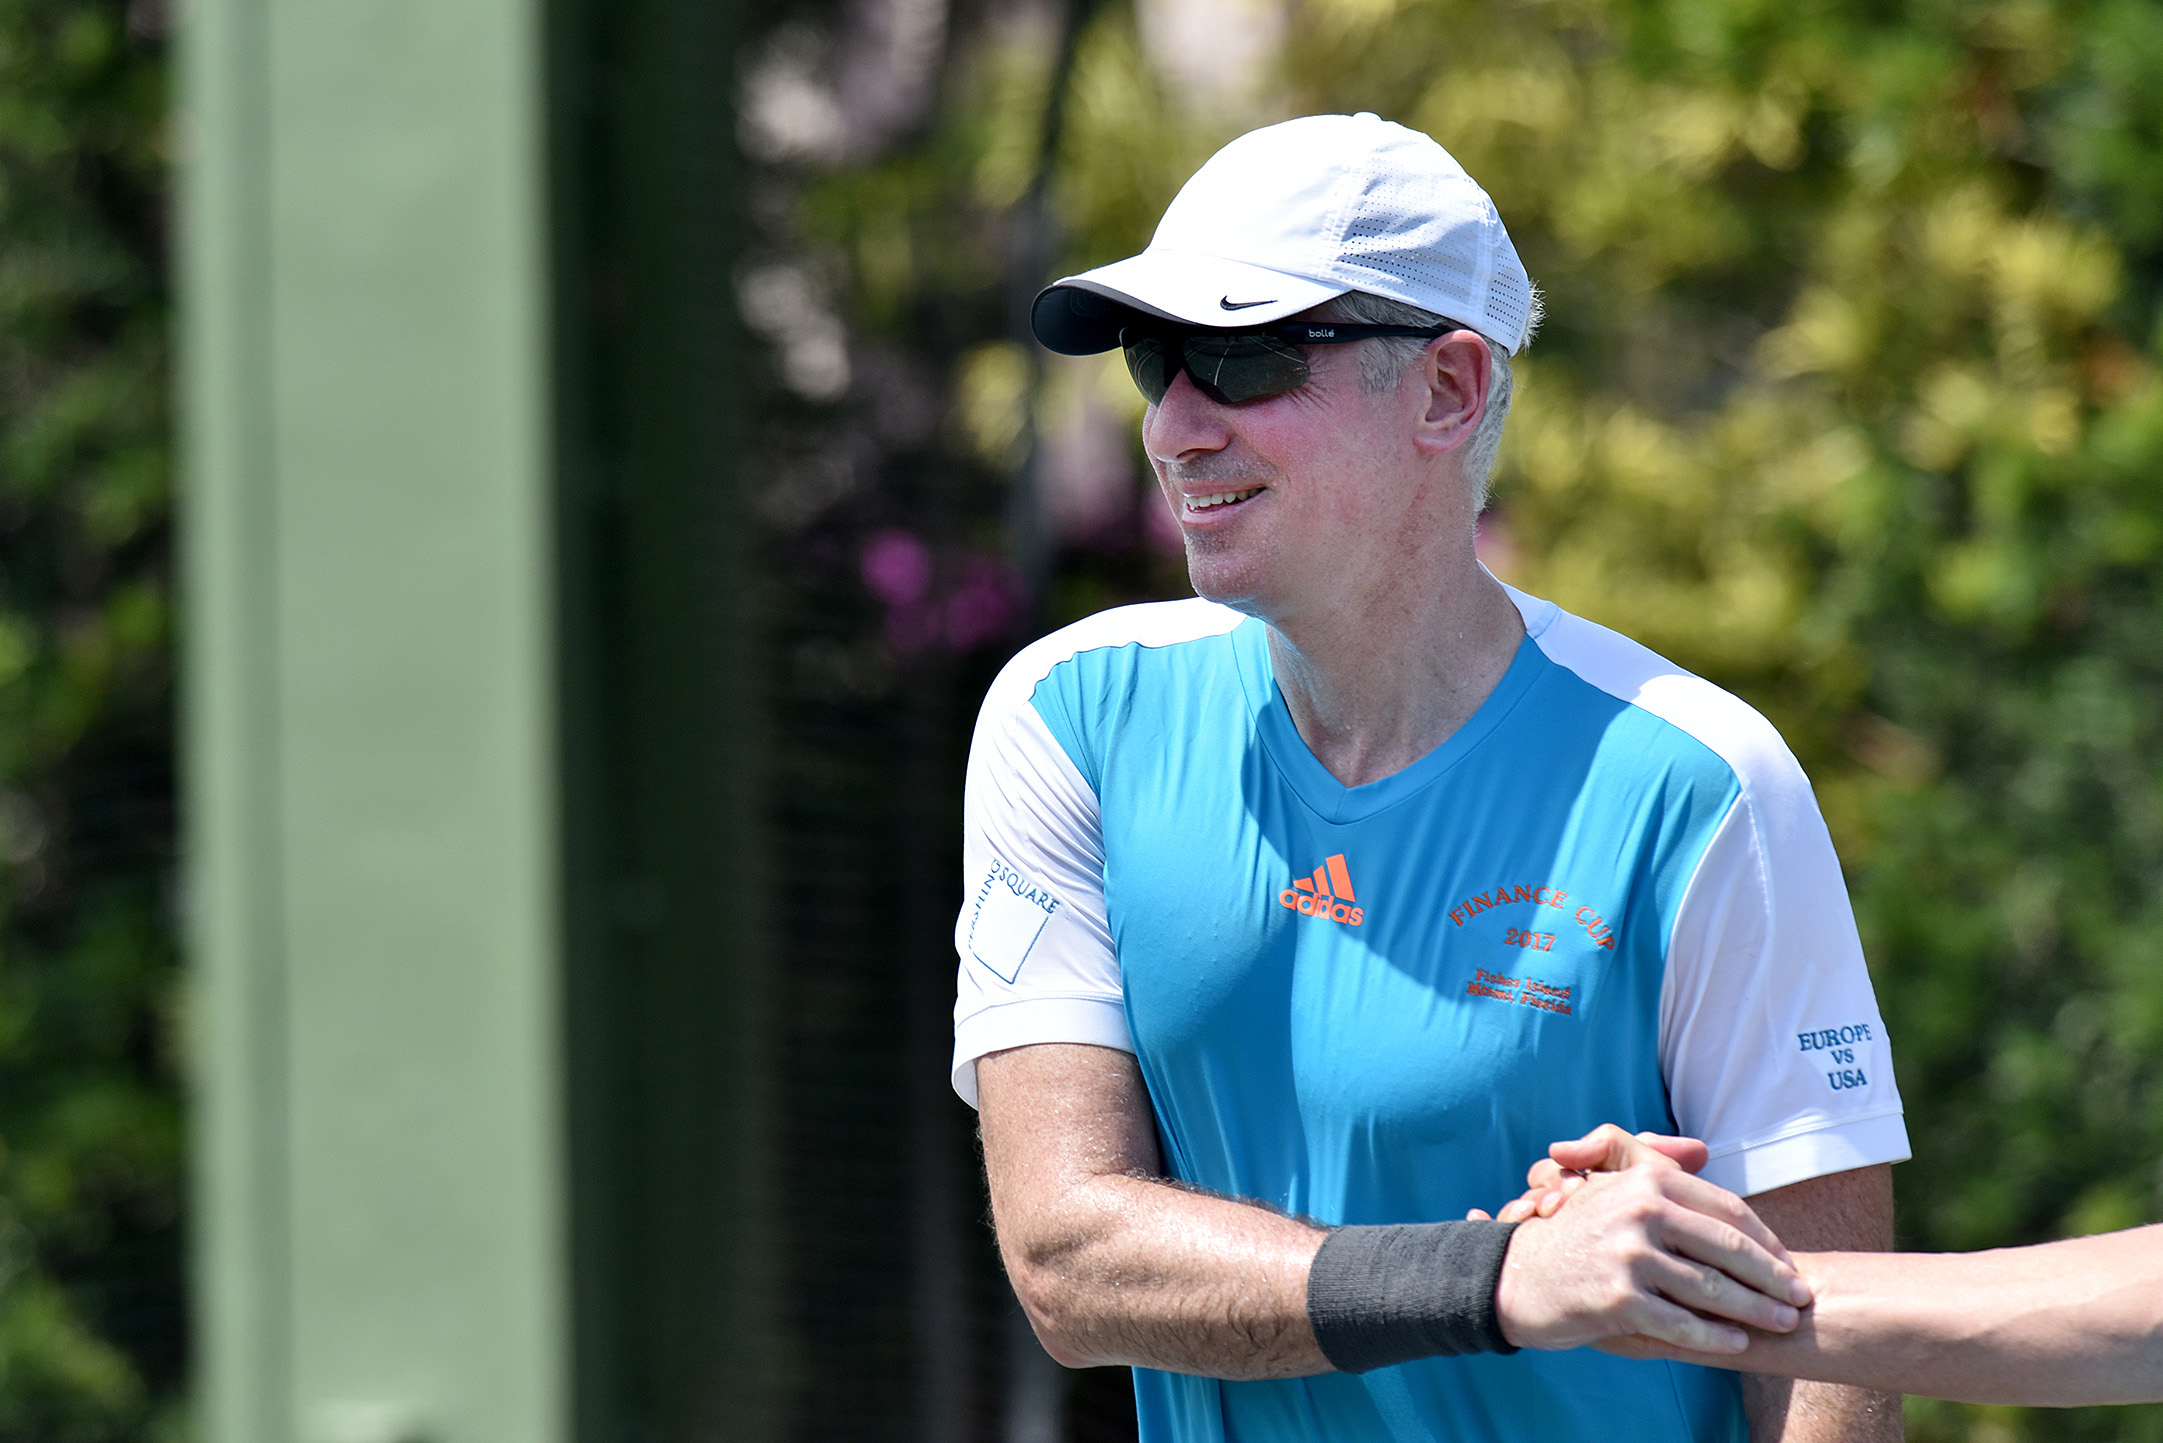 ackman jokes about career falling apart at florida tennis event ackman during the 2017 finance cup